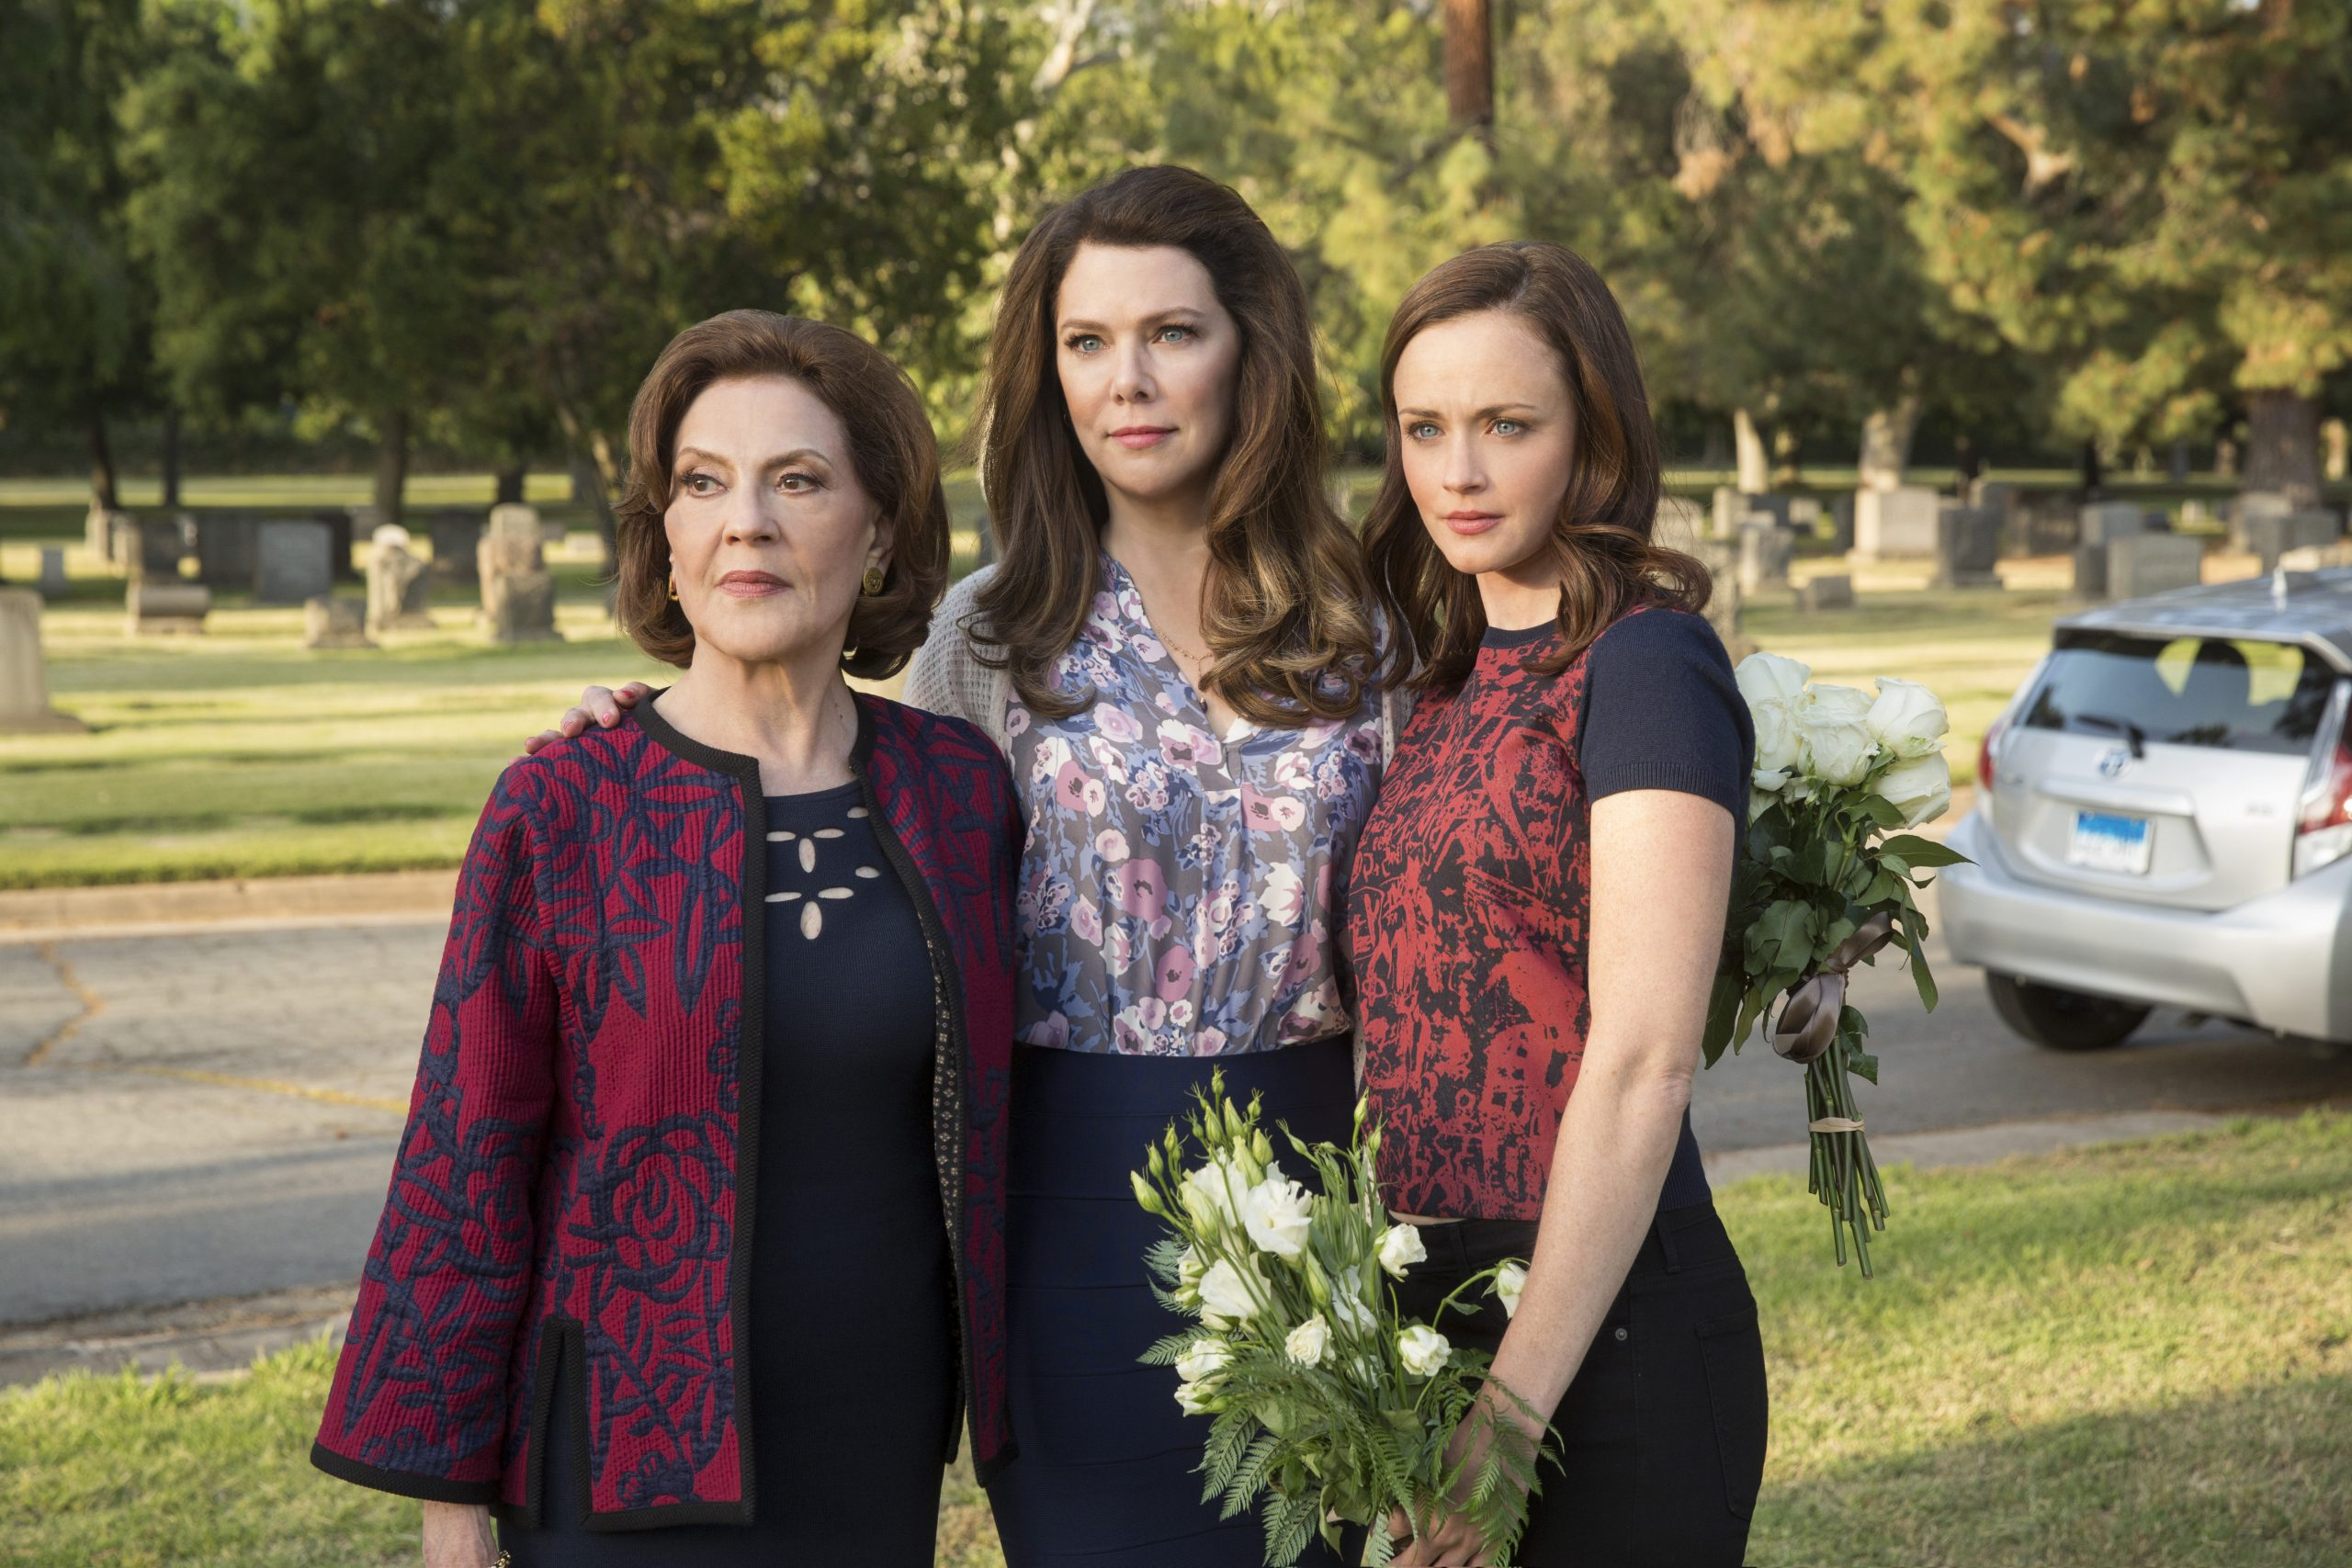 Emily, Lorelai and Rory. The Gilmore Girls